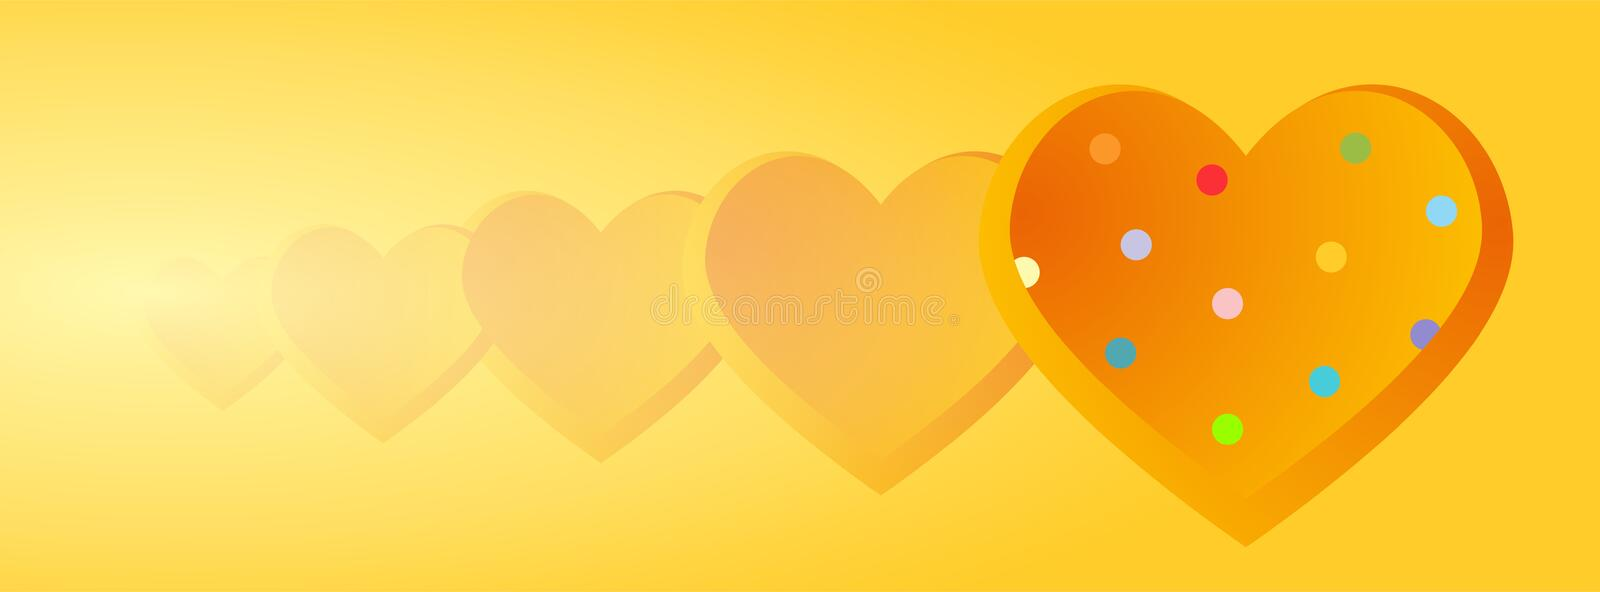 Valentine banners with Polka Dots hearts  - Facebook cover, -vector vector illustration